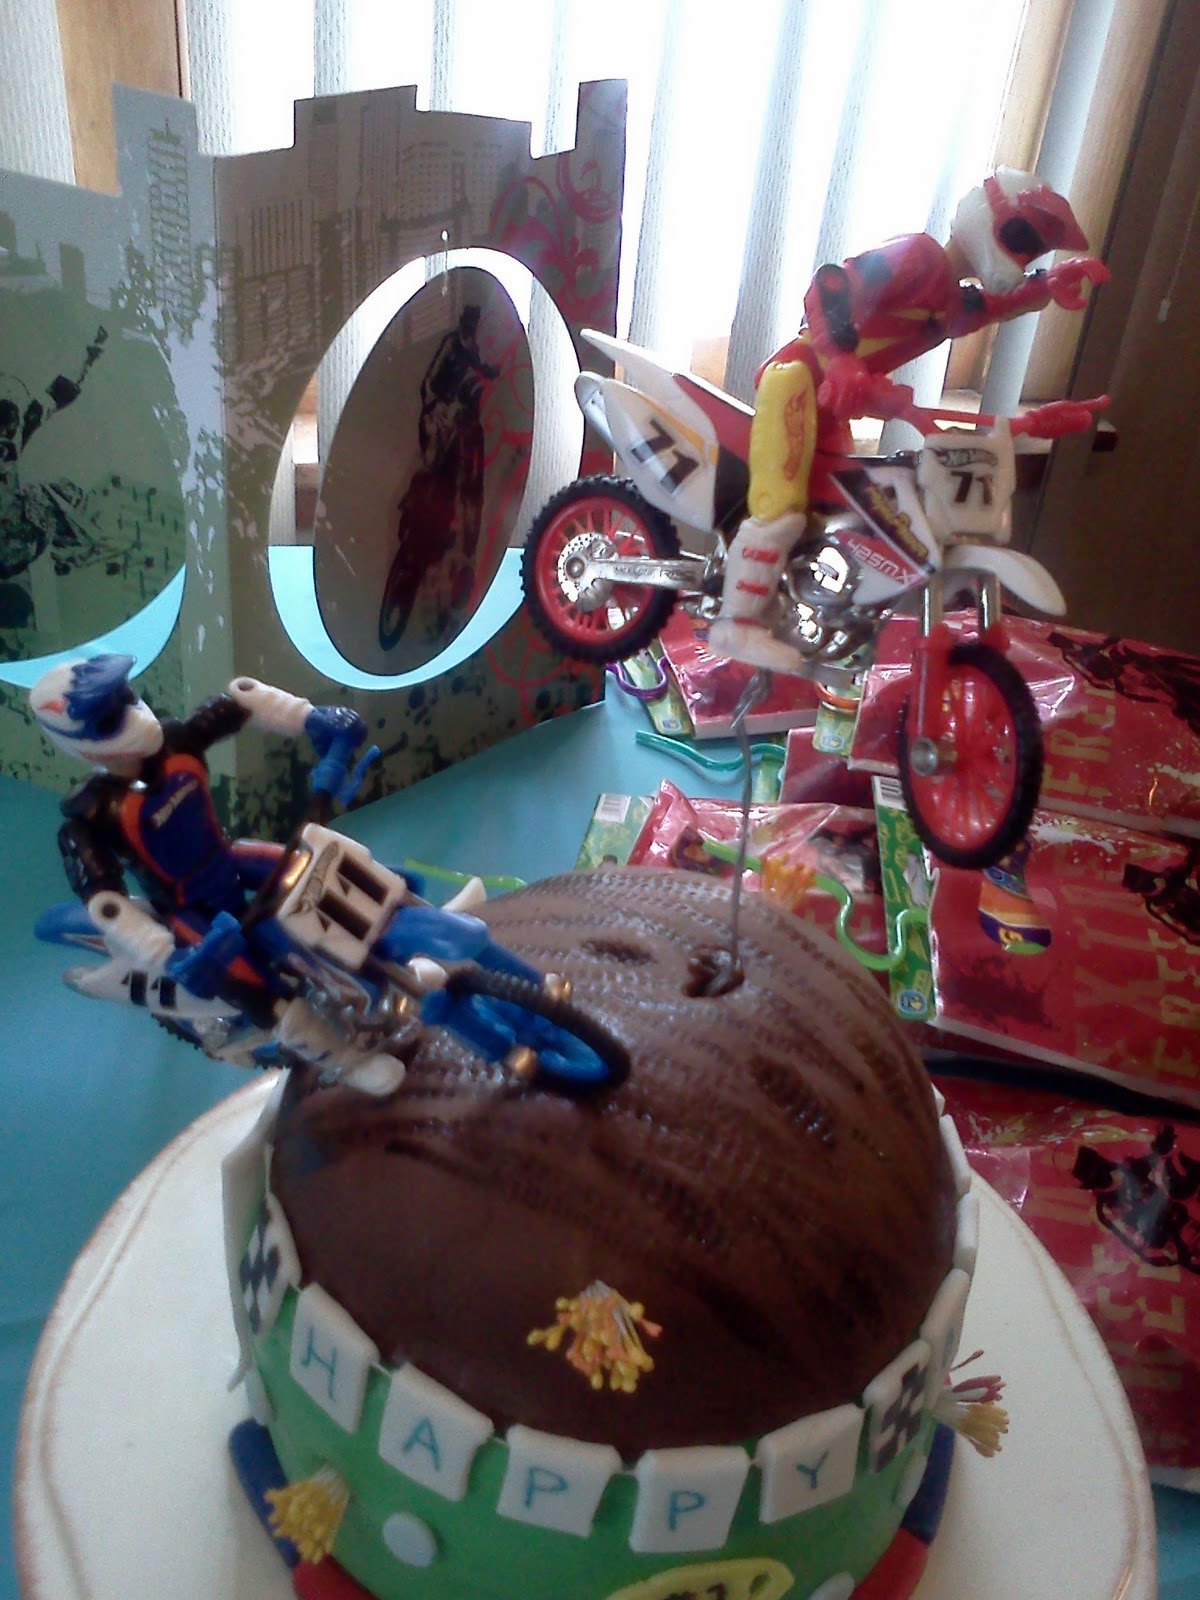 Lindy S Bayside Confections Dirt Bike Cake